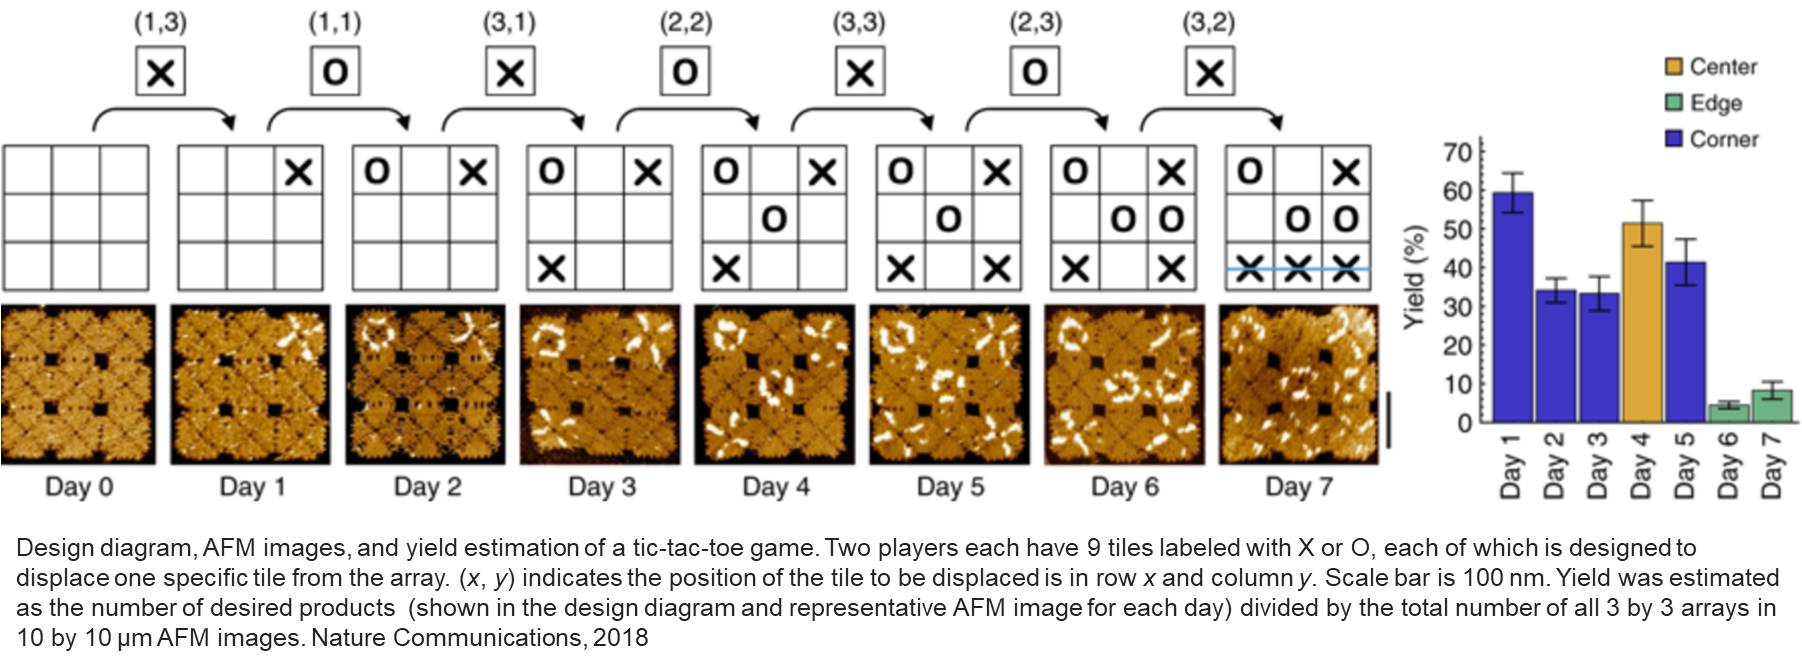 World's smallest tic-tac-toe game board designed with DNA